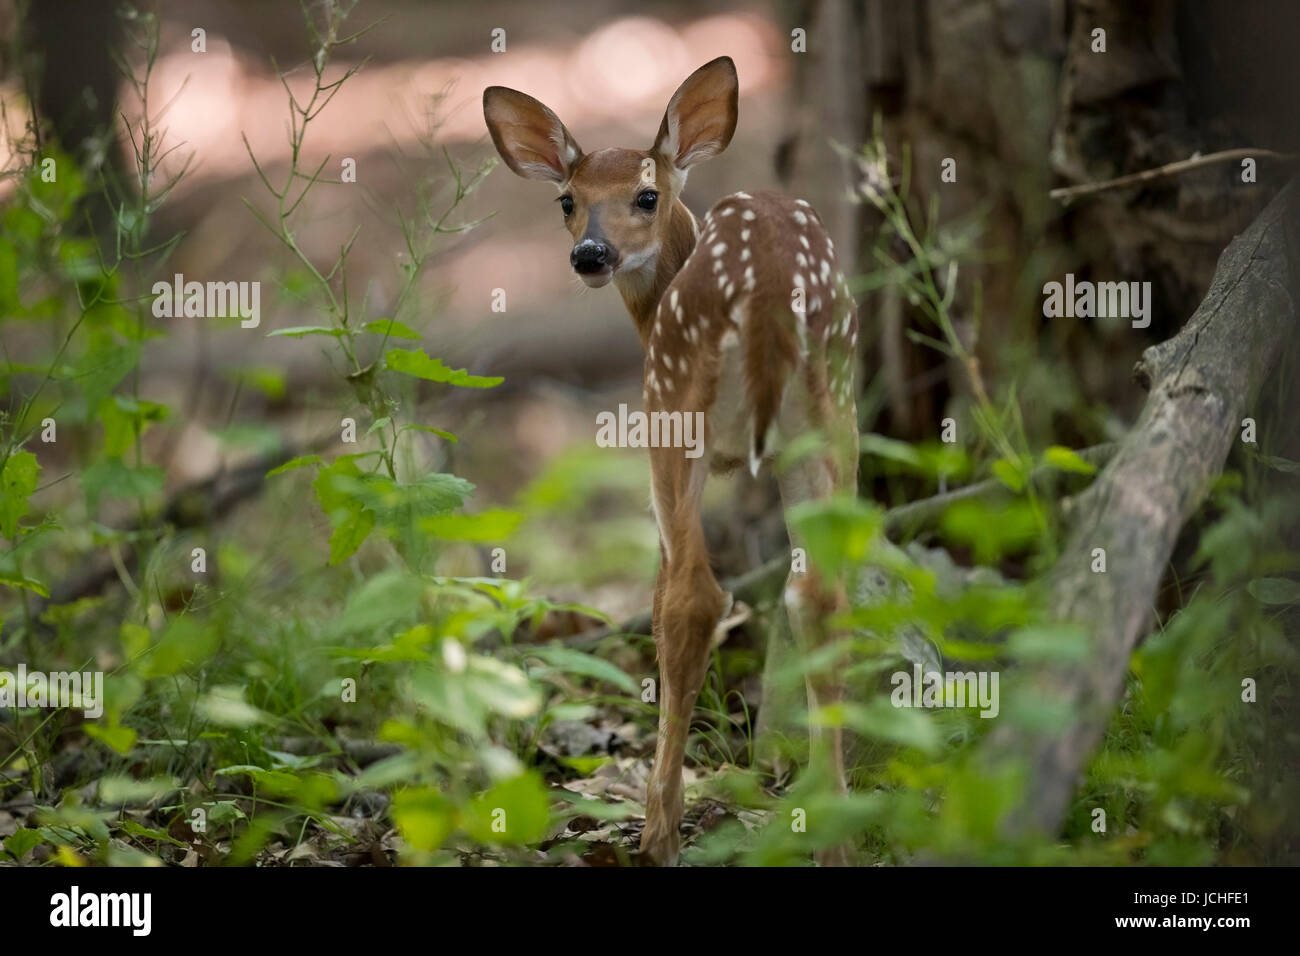 A fawn whitetail deer looking back. - Stock Image